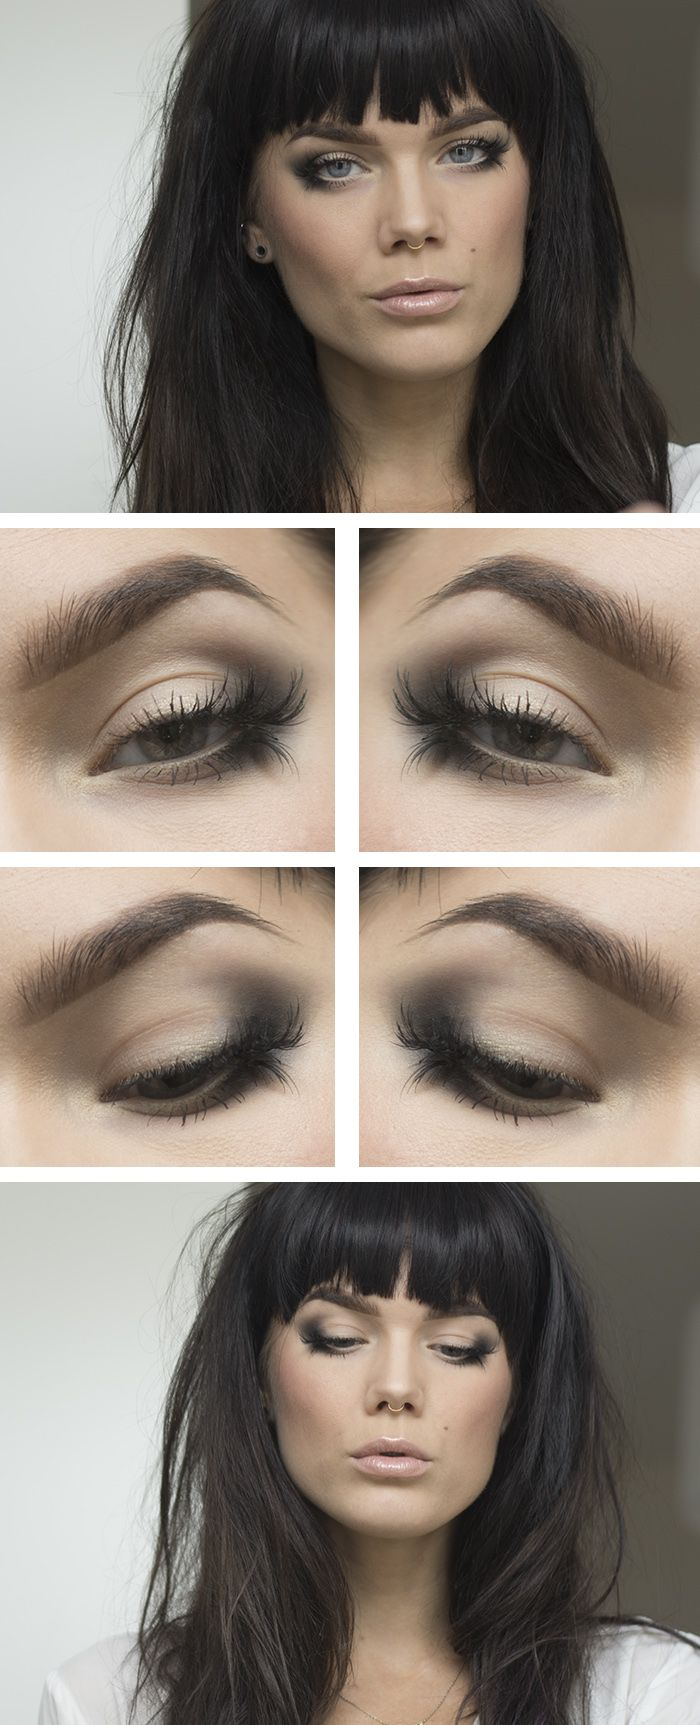 extra false lashes on the end and dark eye shadow in the corner.